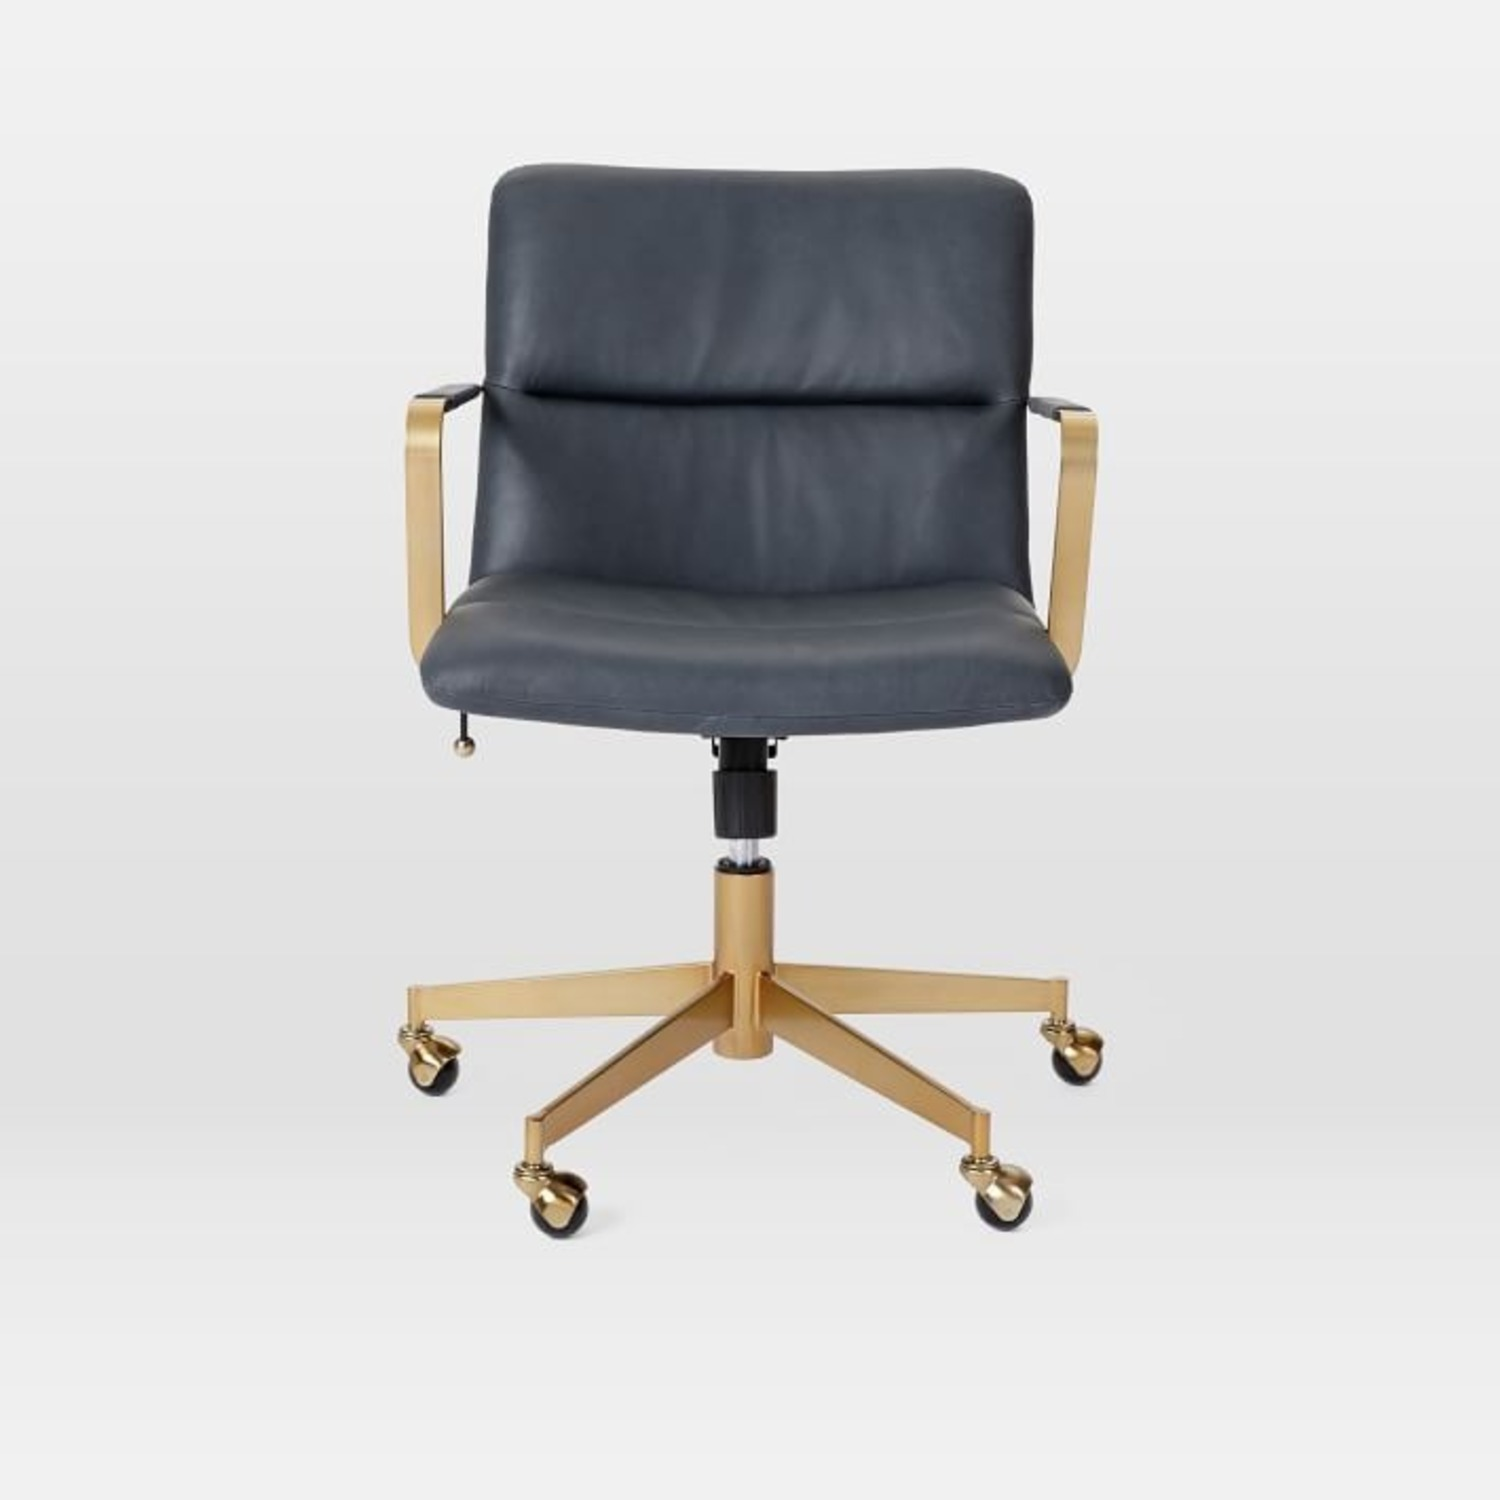 West Elm Copper Mid-Century Leather Office Chair - image-4